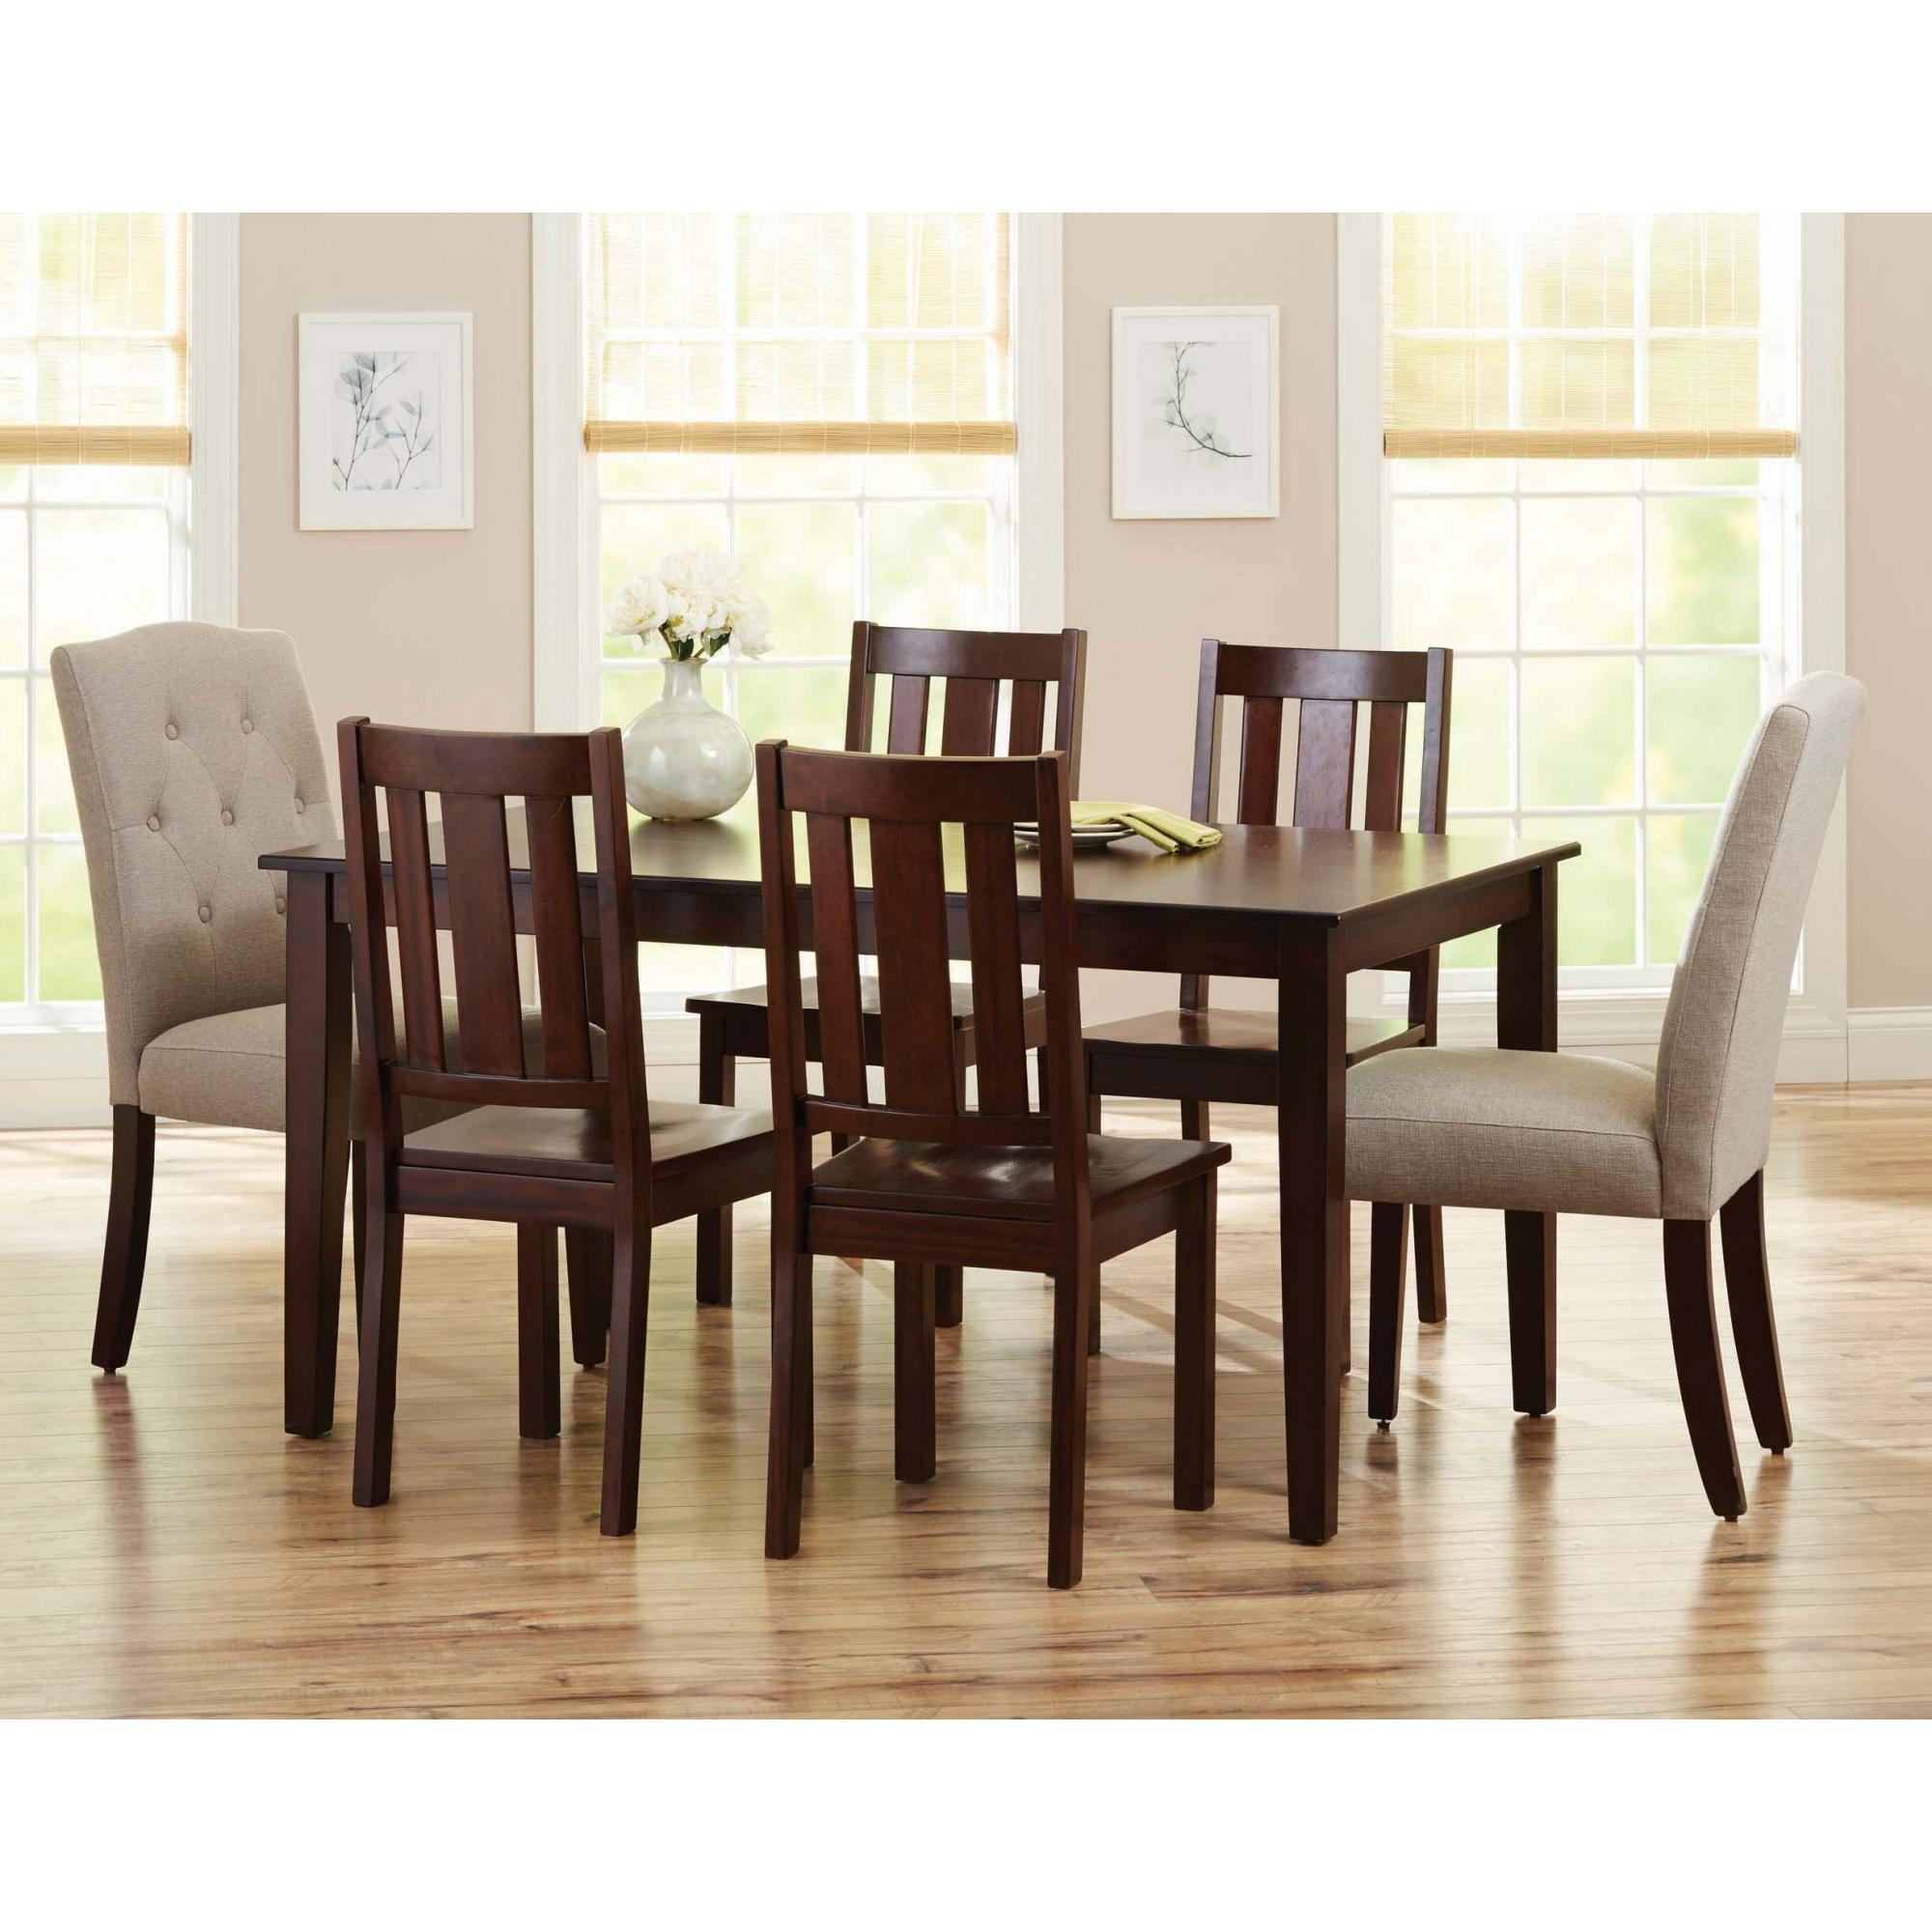 Better Homes and Gardens Bankston Dining Chairs Set of 2 Mocha